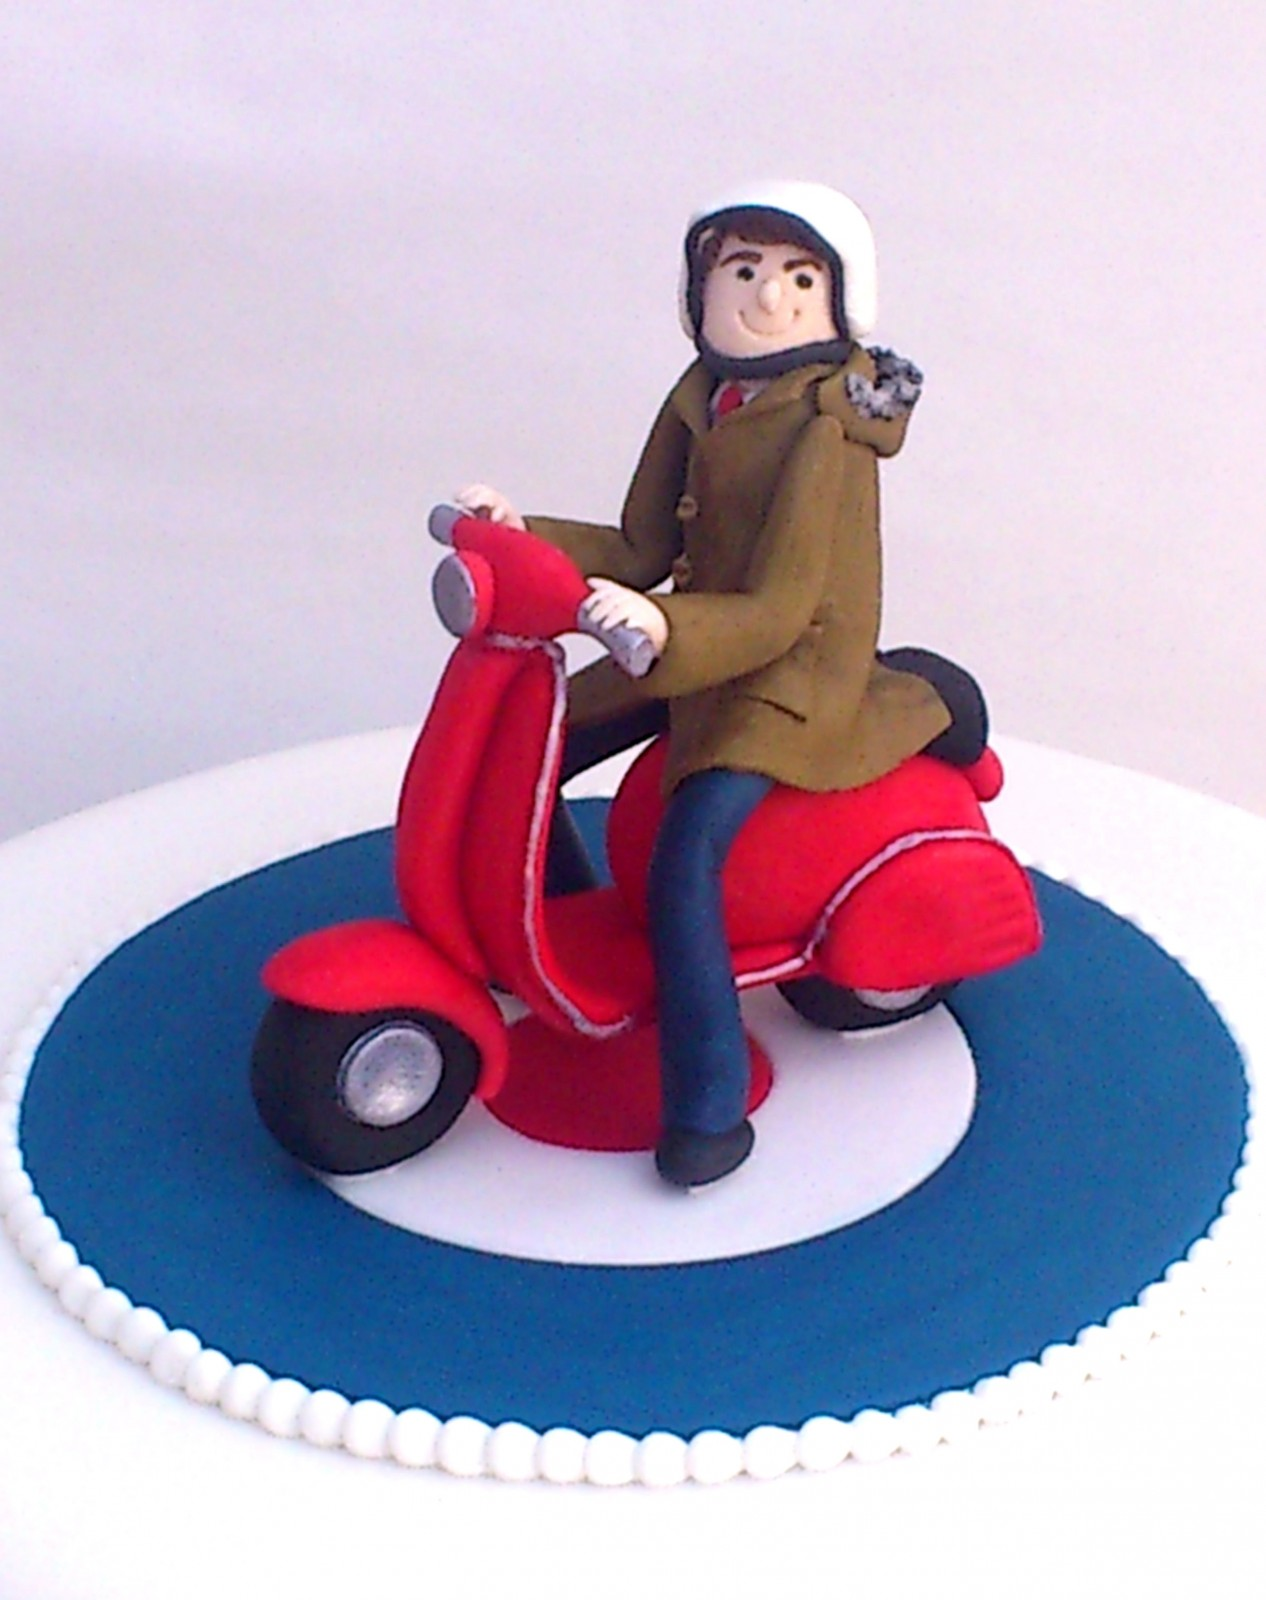 Scooter Cake Designs